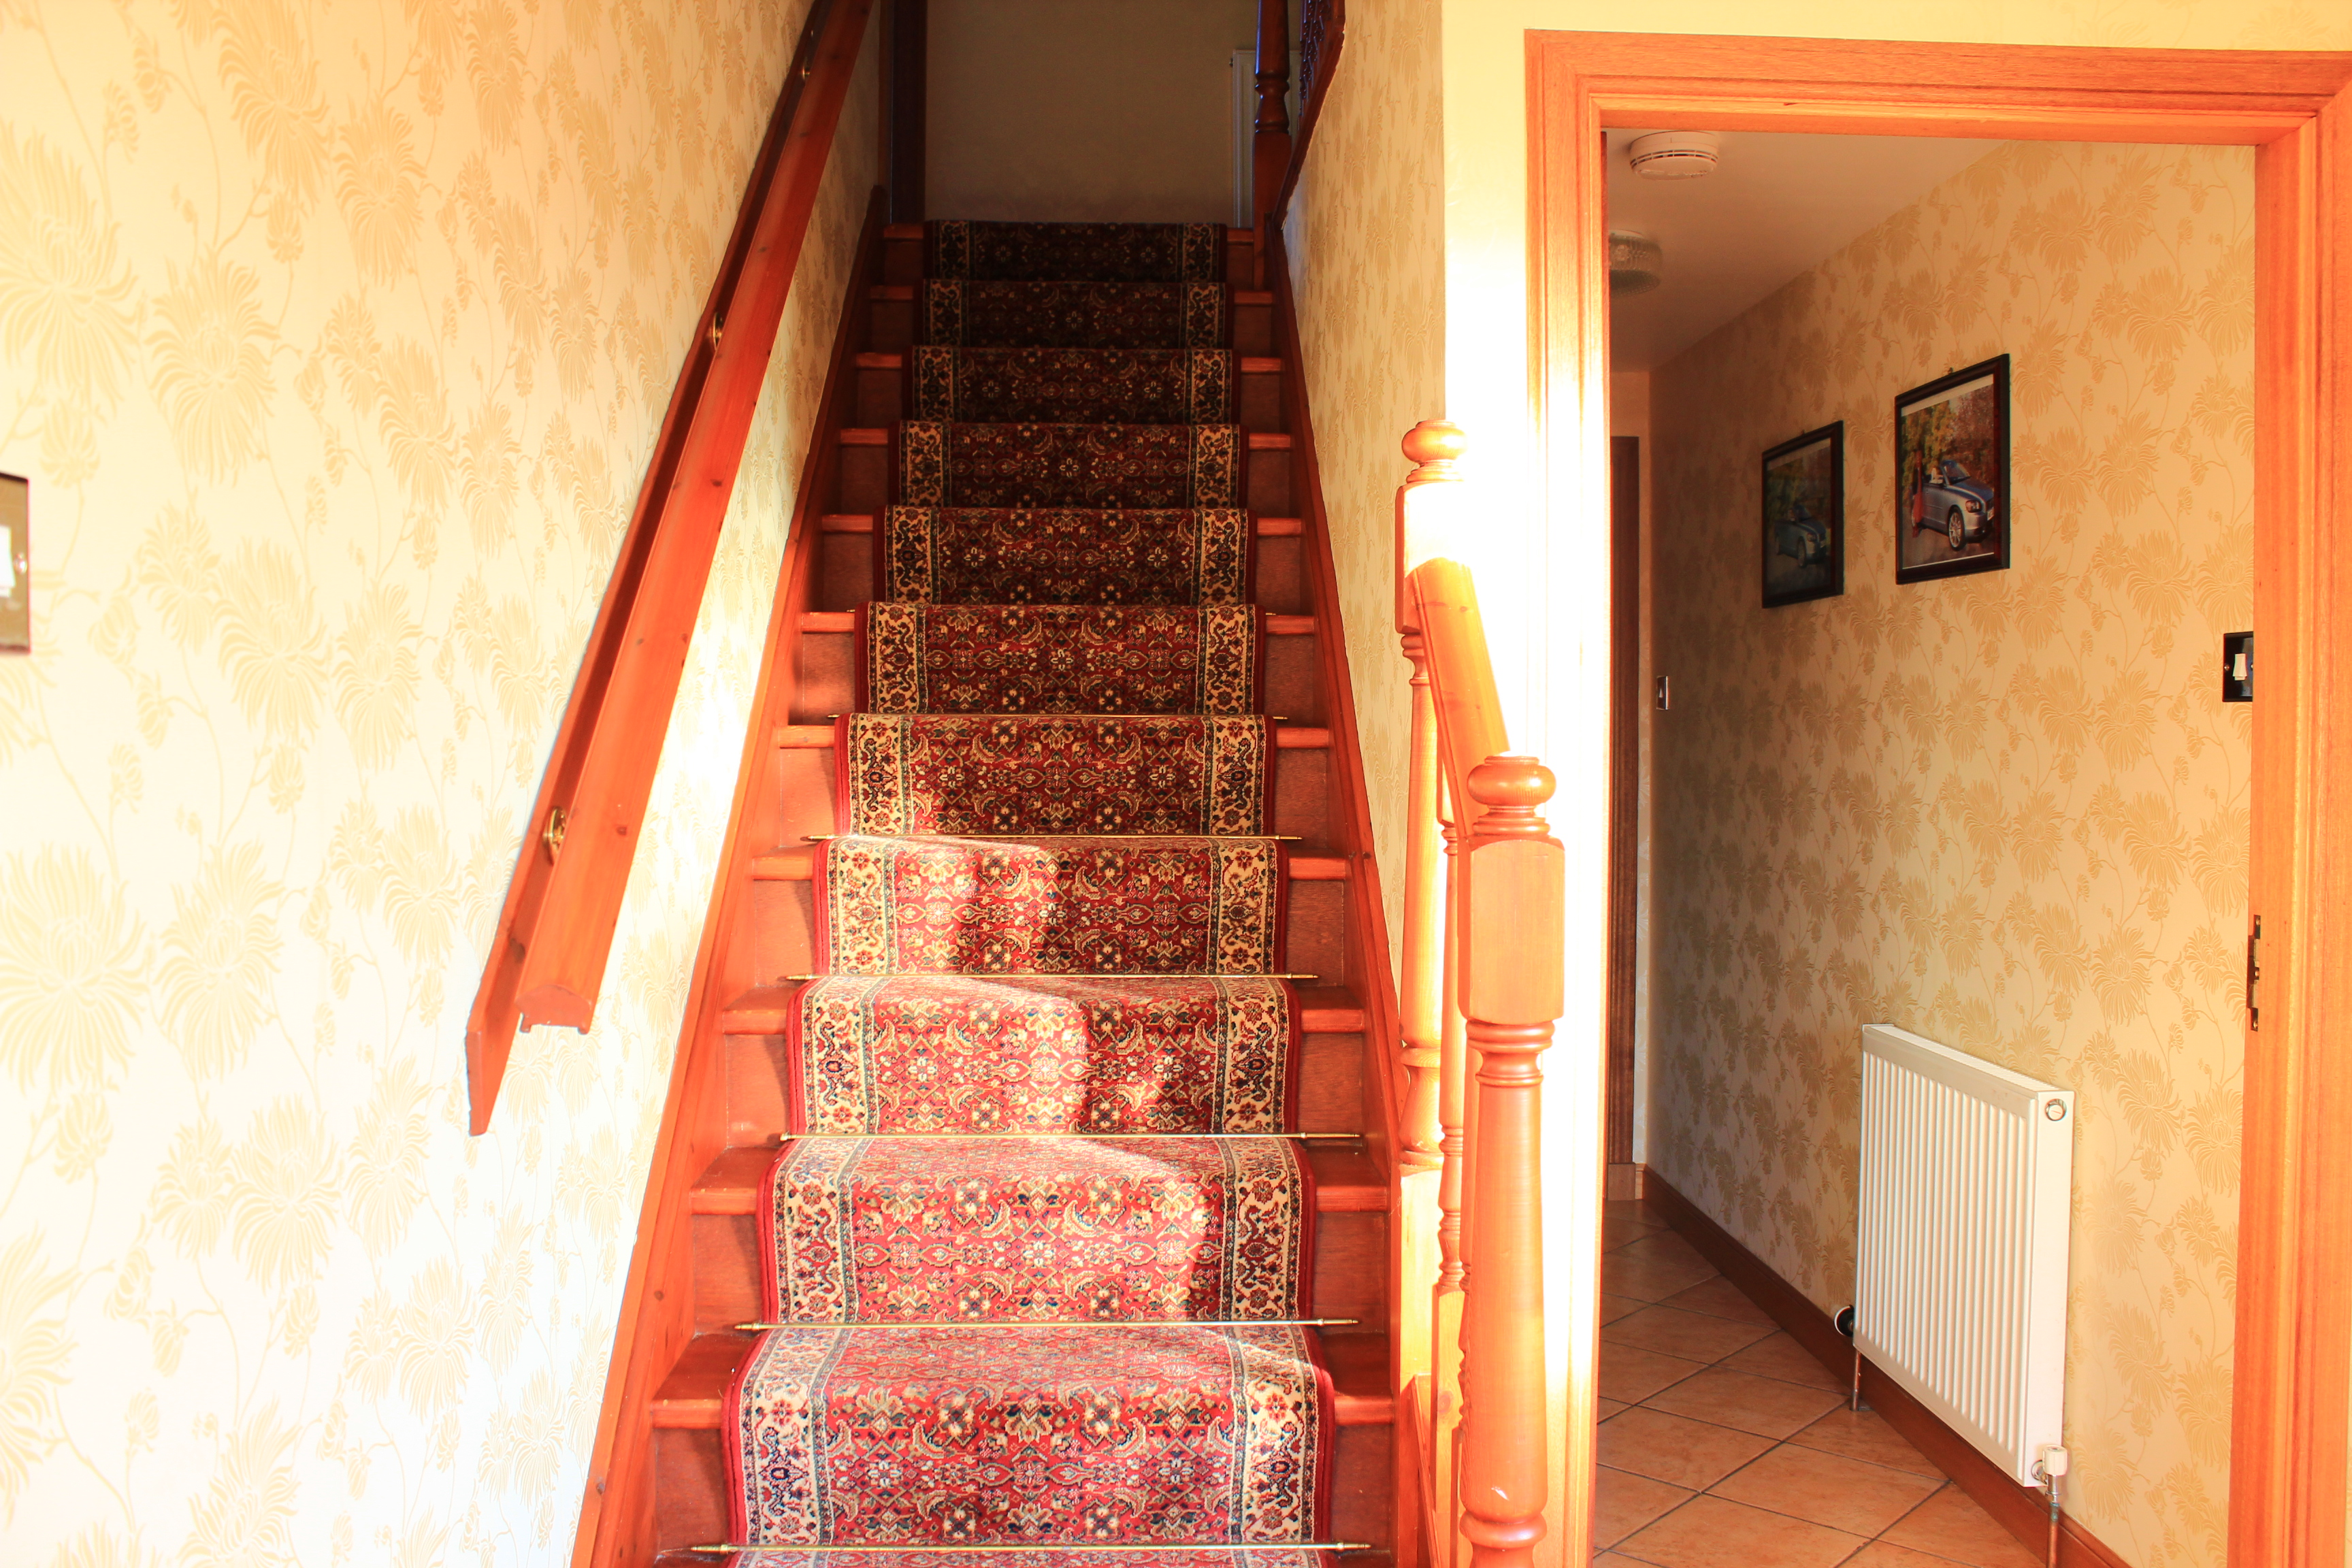 Stairs up to rooms